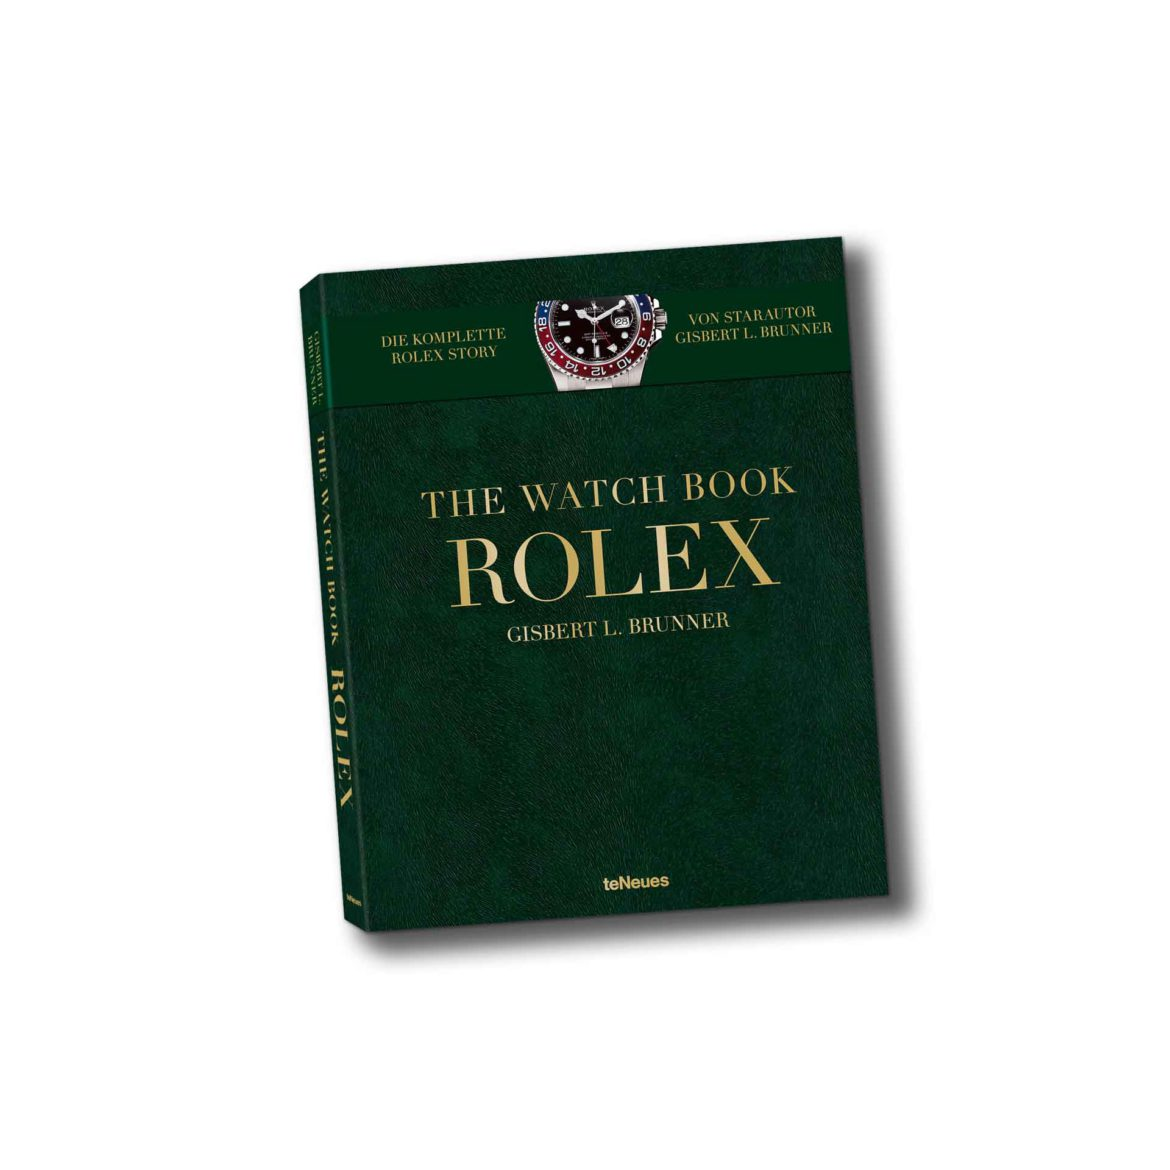 The Watch Book Rolex ISBN 978-3-96171-036-2